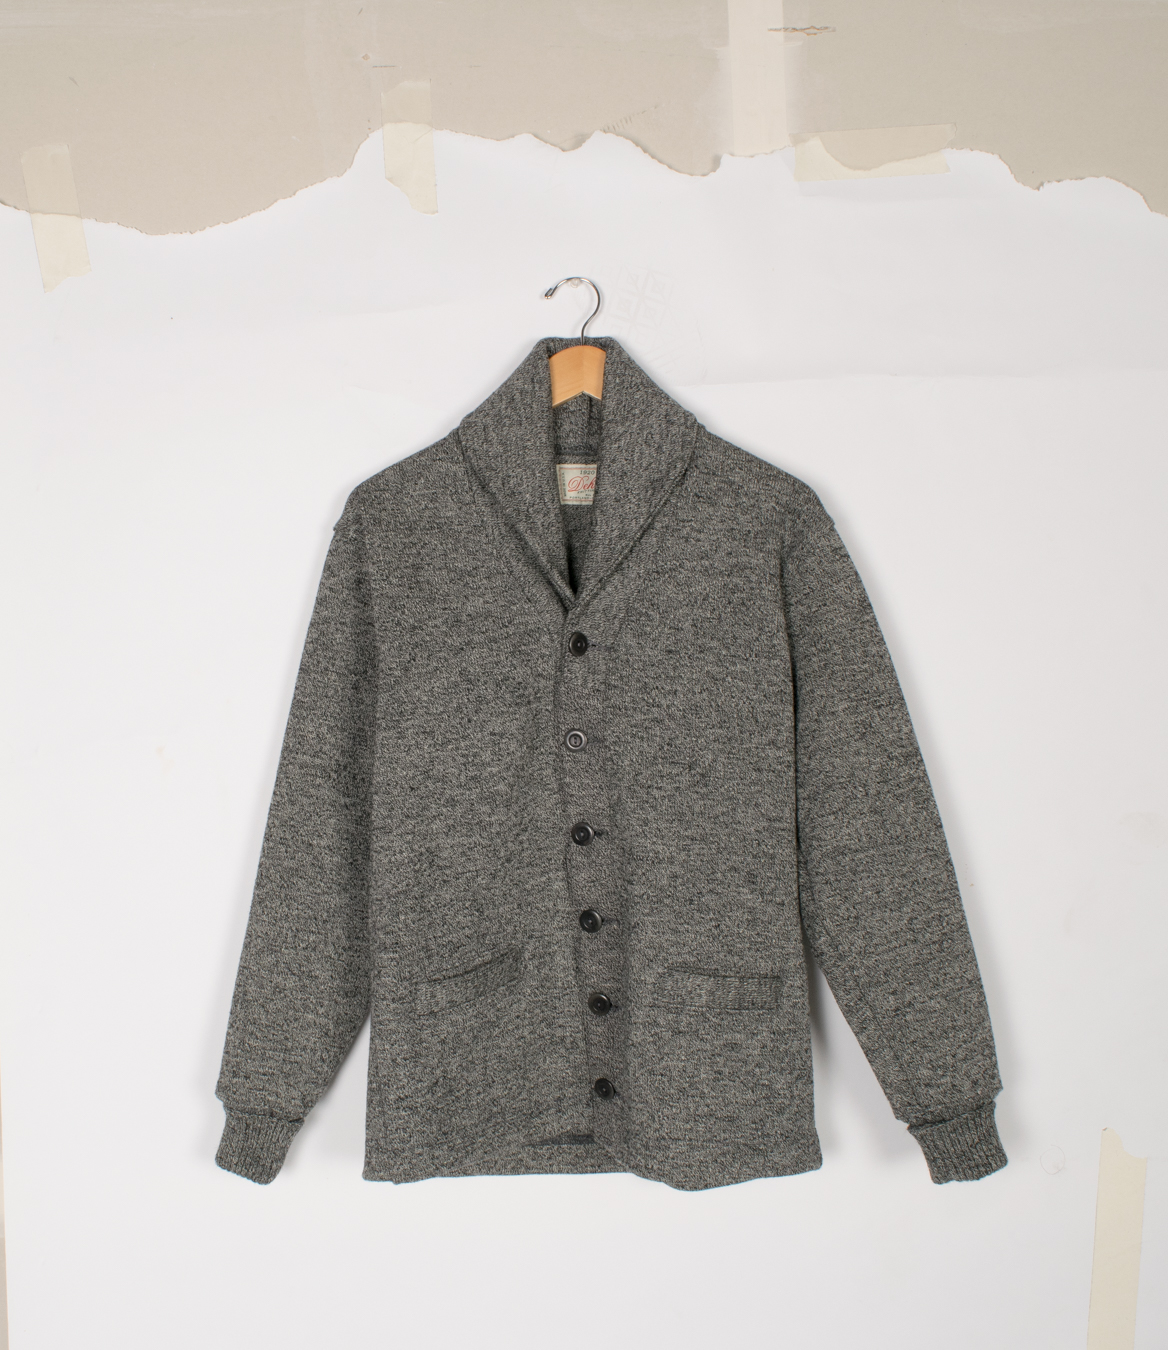 Shawl Sweater Coat - Salt & Pepper - $395